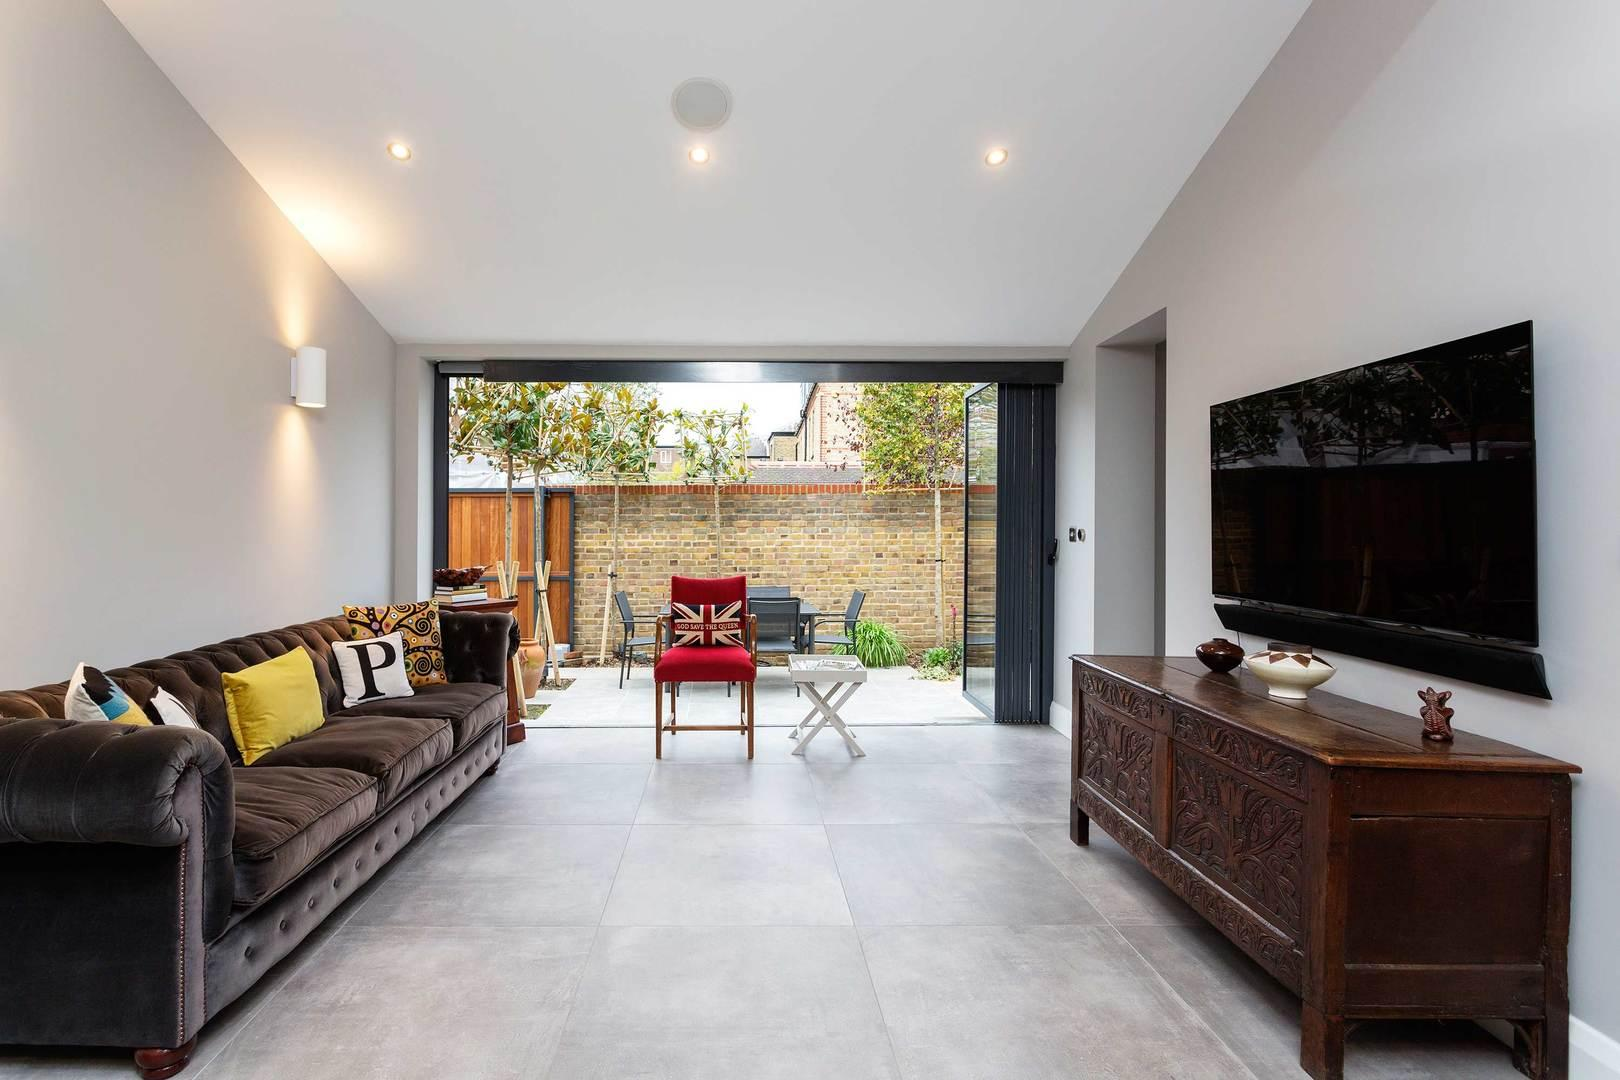 Property Image 2 - Sleek, Sophisticated Wimbledon Home with Private Garden